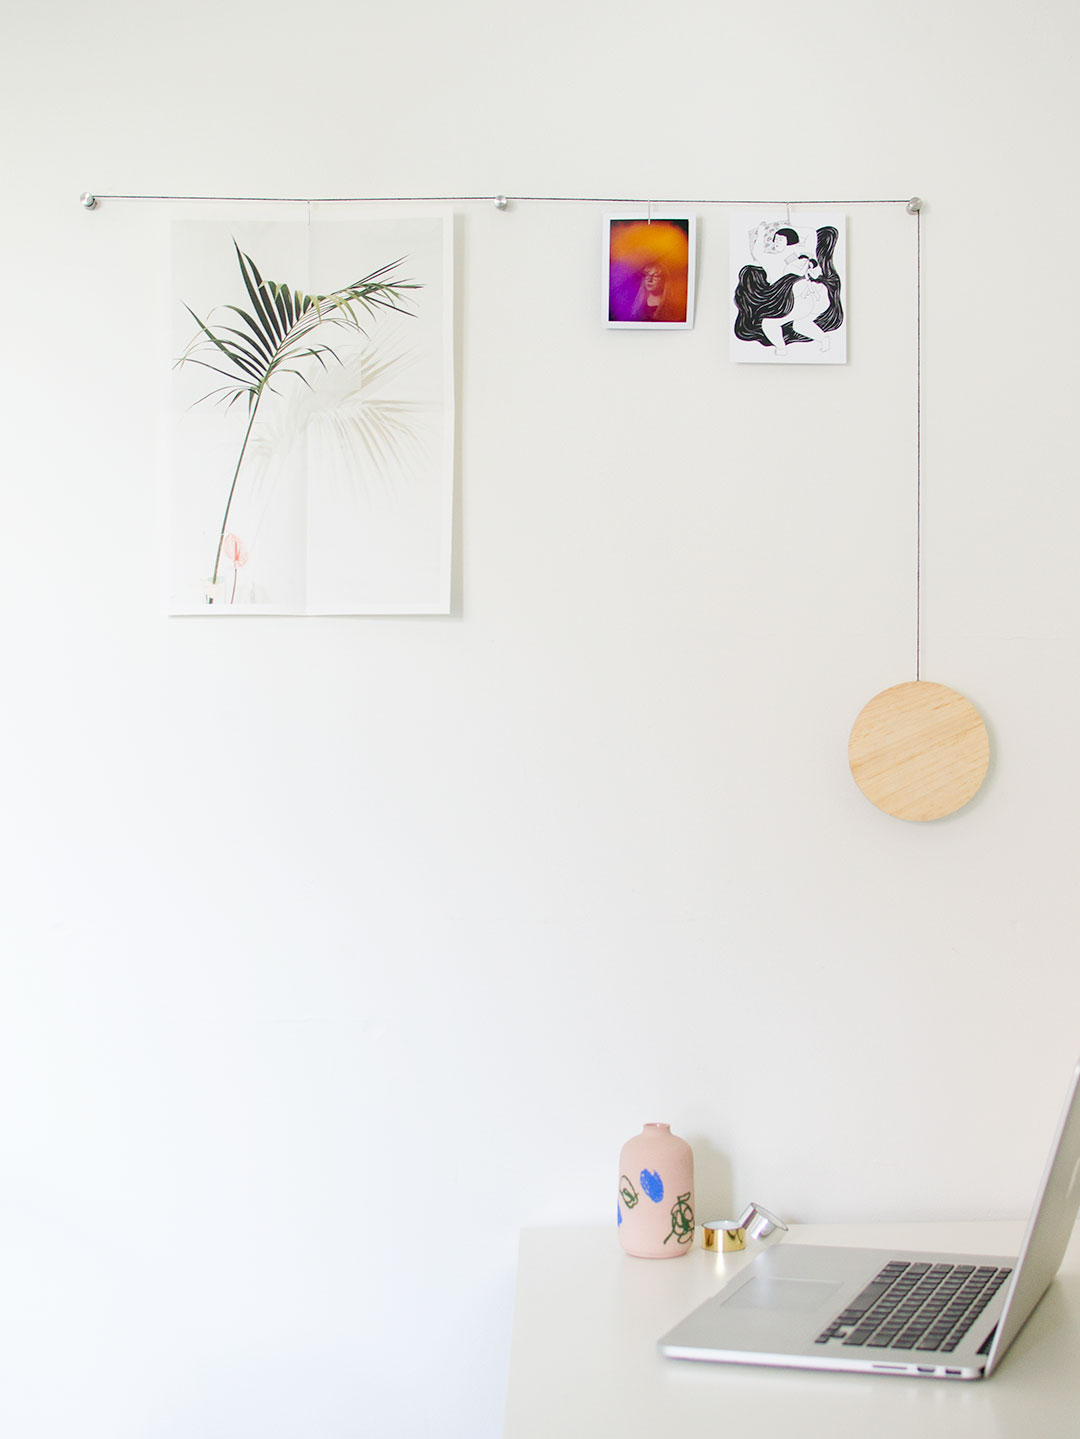 Diy minimalist hanging photo display the sweet beast for Diy hanging picture display